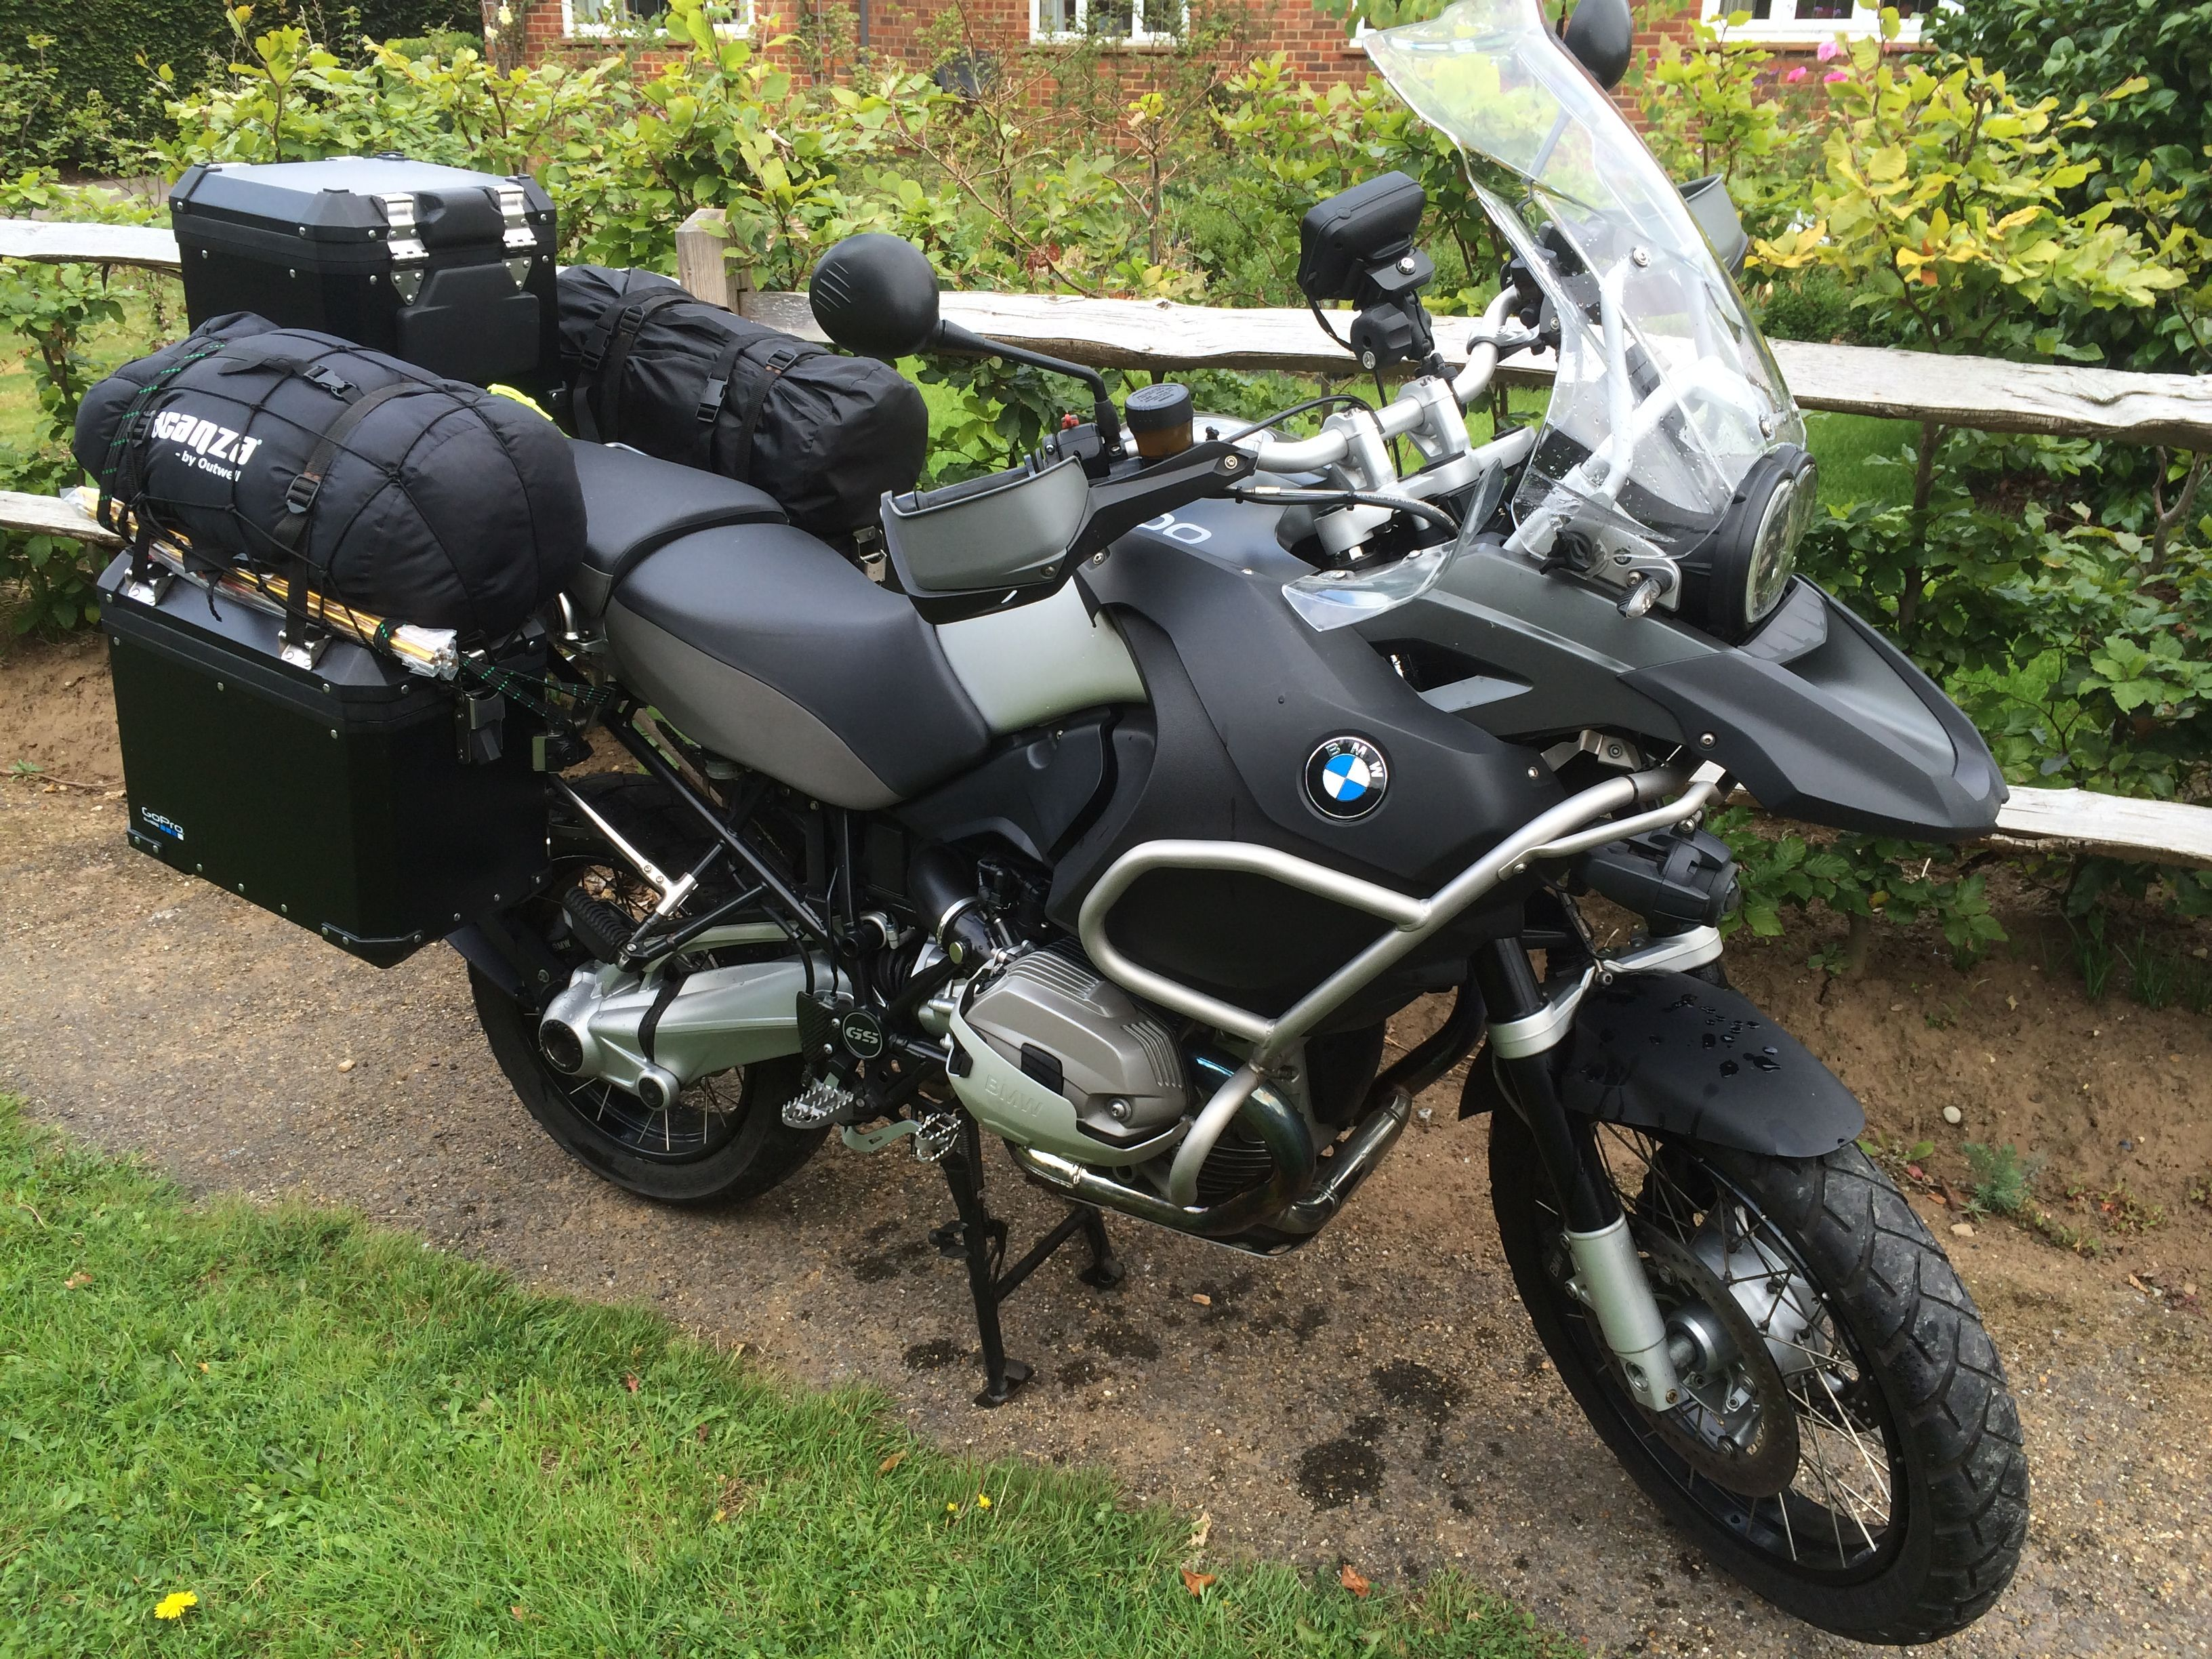 BMW R1200 GS Adventure - After getting to work with the